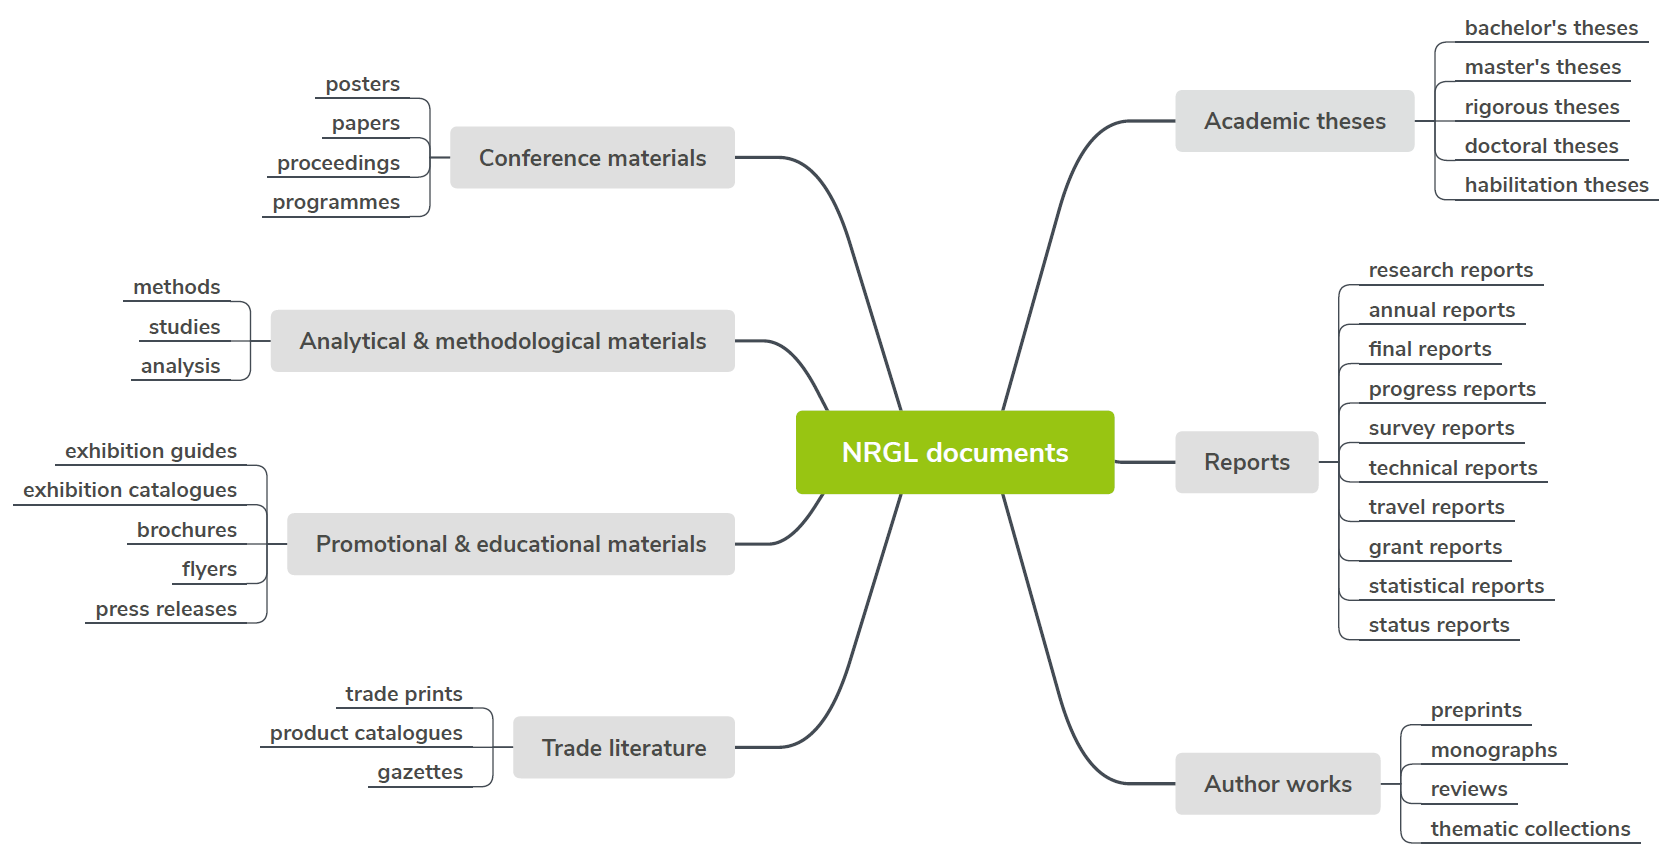 NUSL typology of documents as a mind map